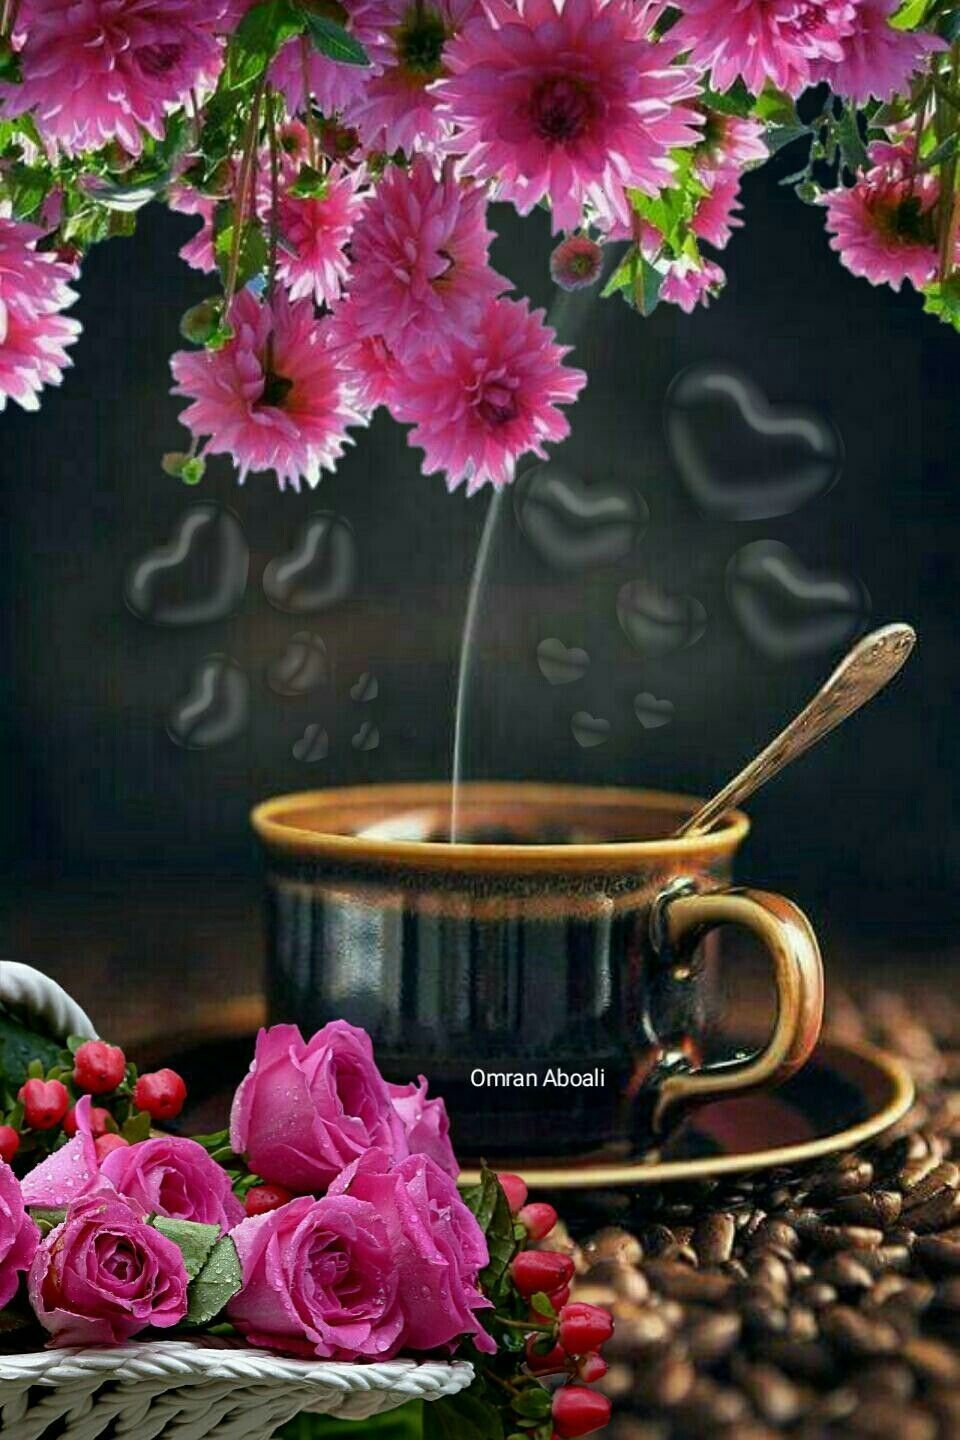 Pin By Luciana Silva On A Guy Like You Good Morning Coffee Good Morning Coffee Gif Chocolate Tea